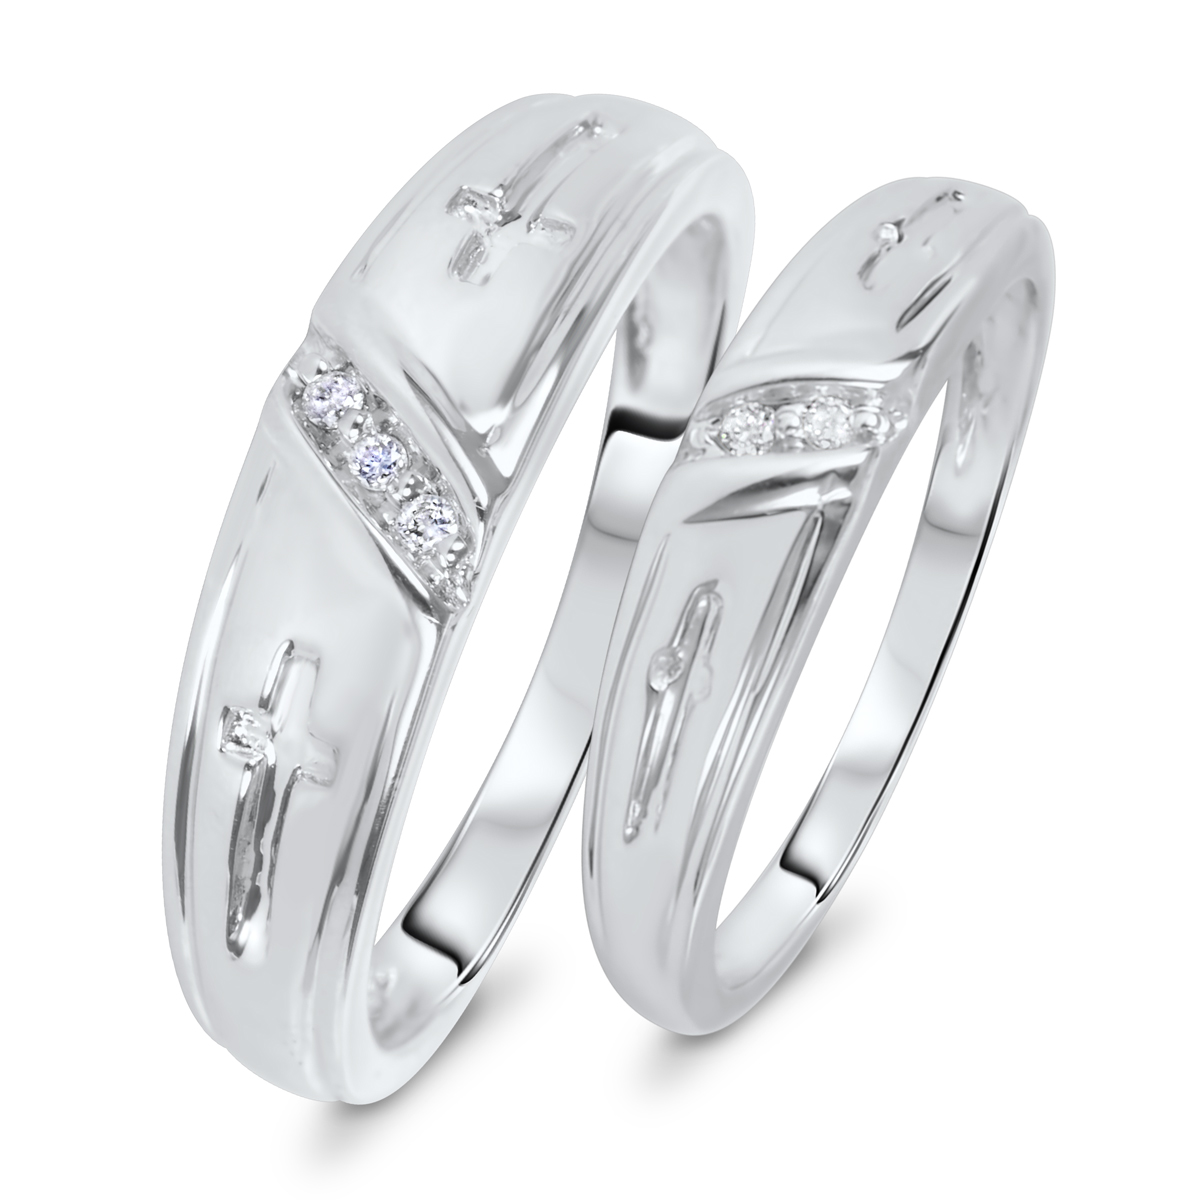 1/20 Carat T.W. Diamond His And Hers Wedding Band Set 10K White Gold